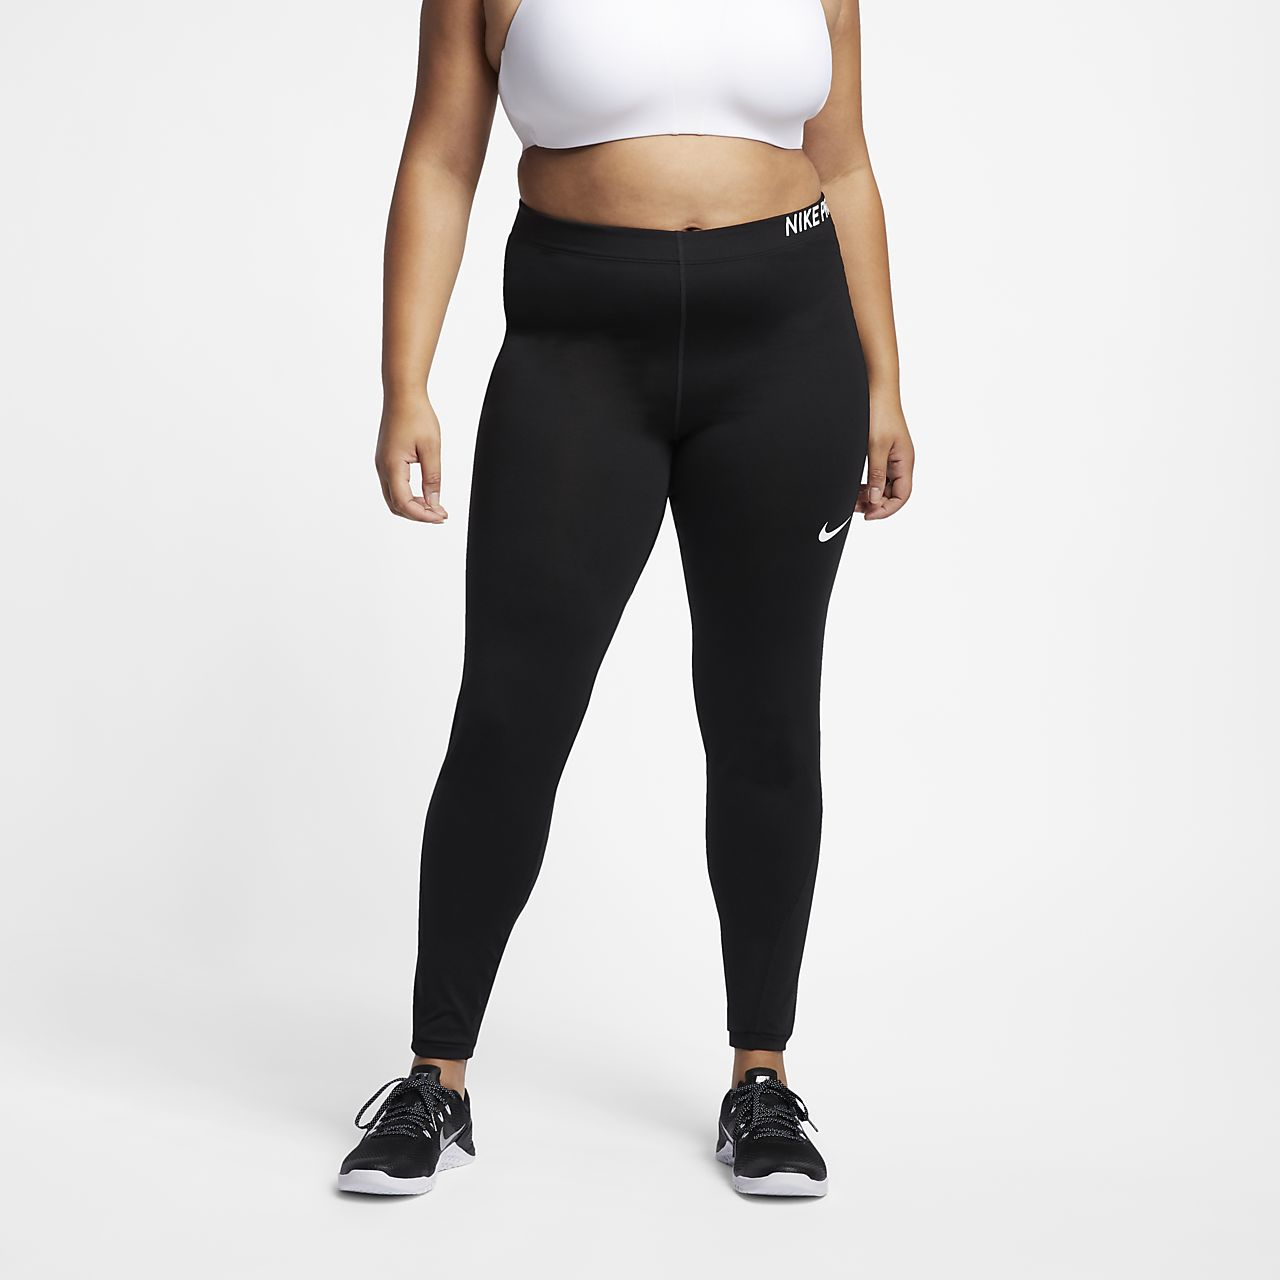 ... Nike Pro (Plus Size) Women's Training Tights